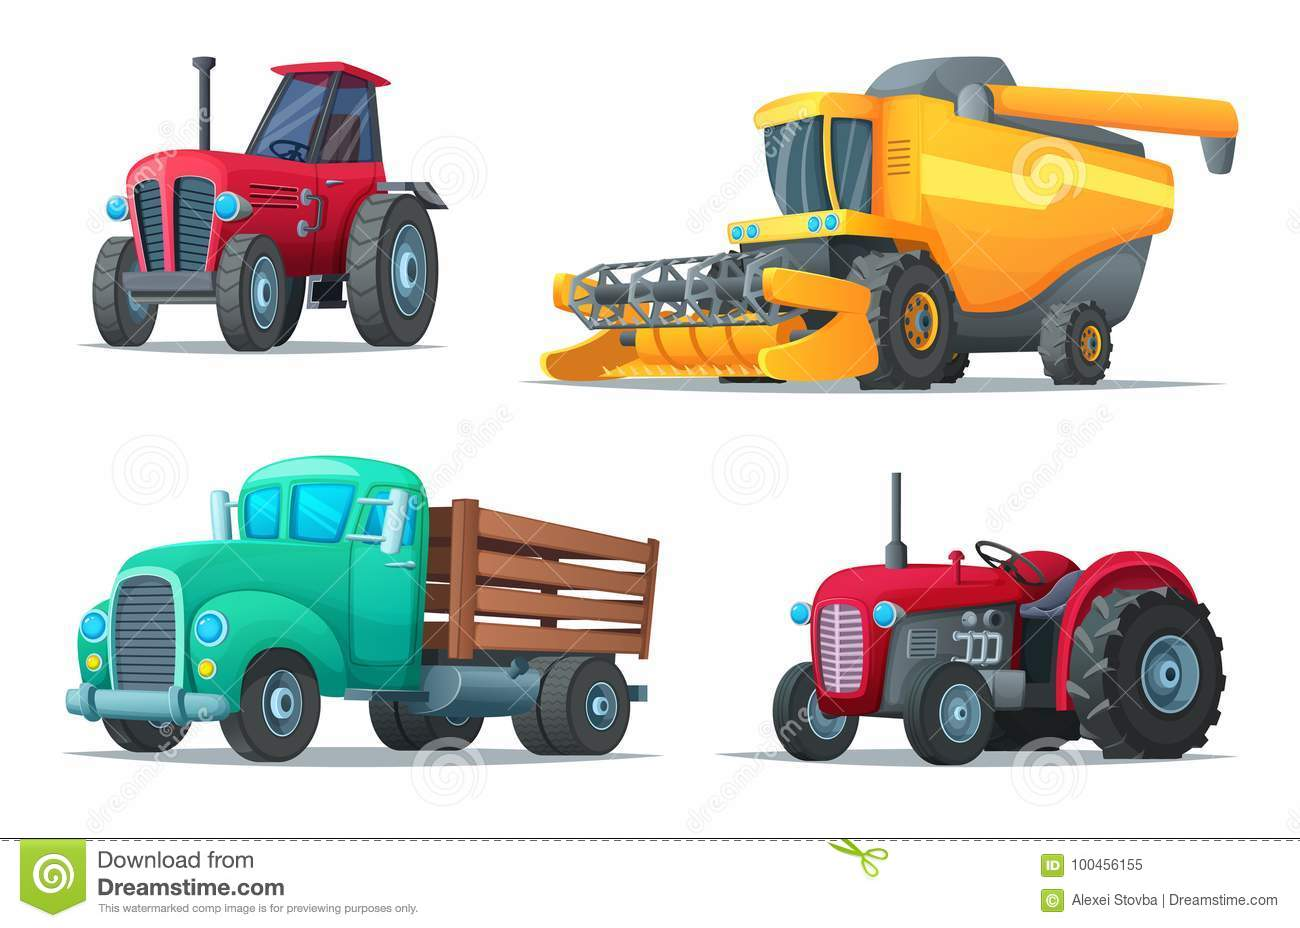 Agricultural Machinery And Equipment : Agricultural cartoons illustrations vector stock images